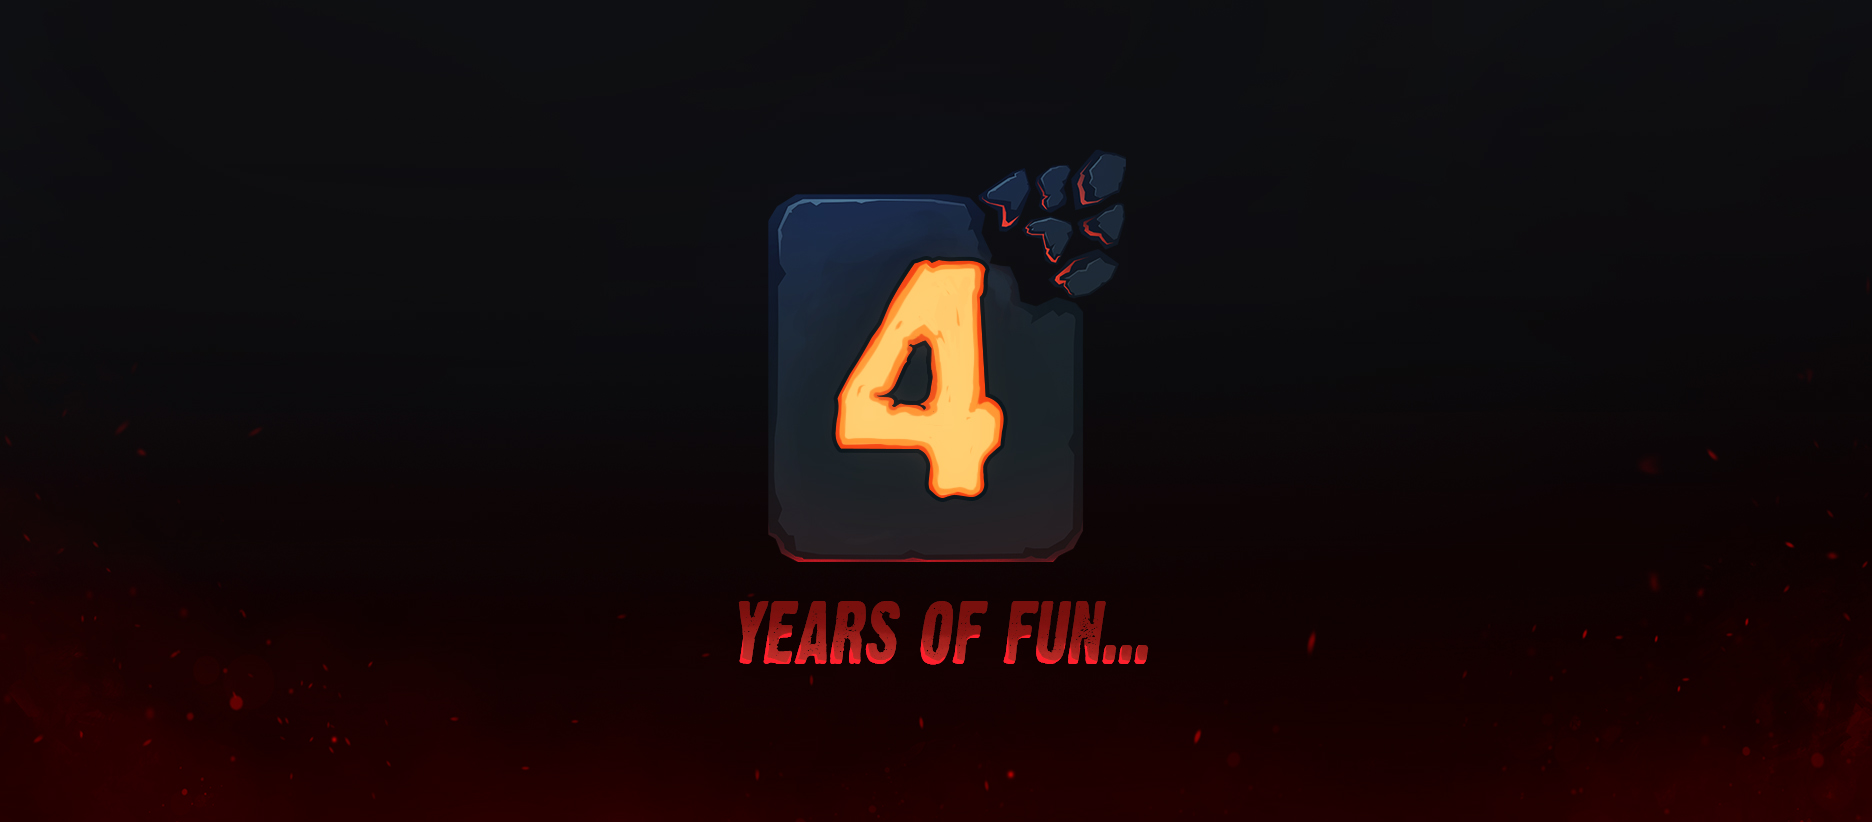 4 years of fun.jpg